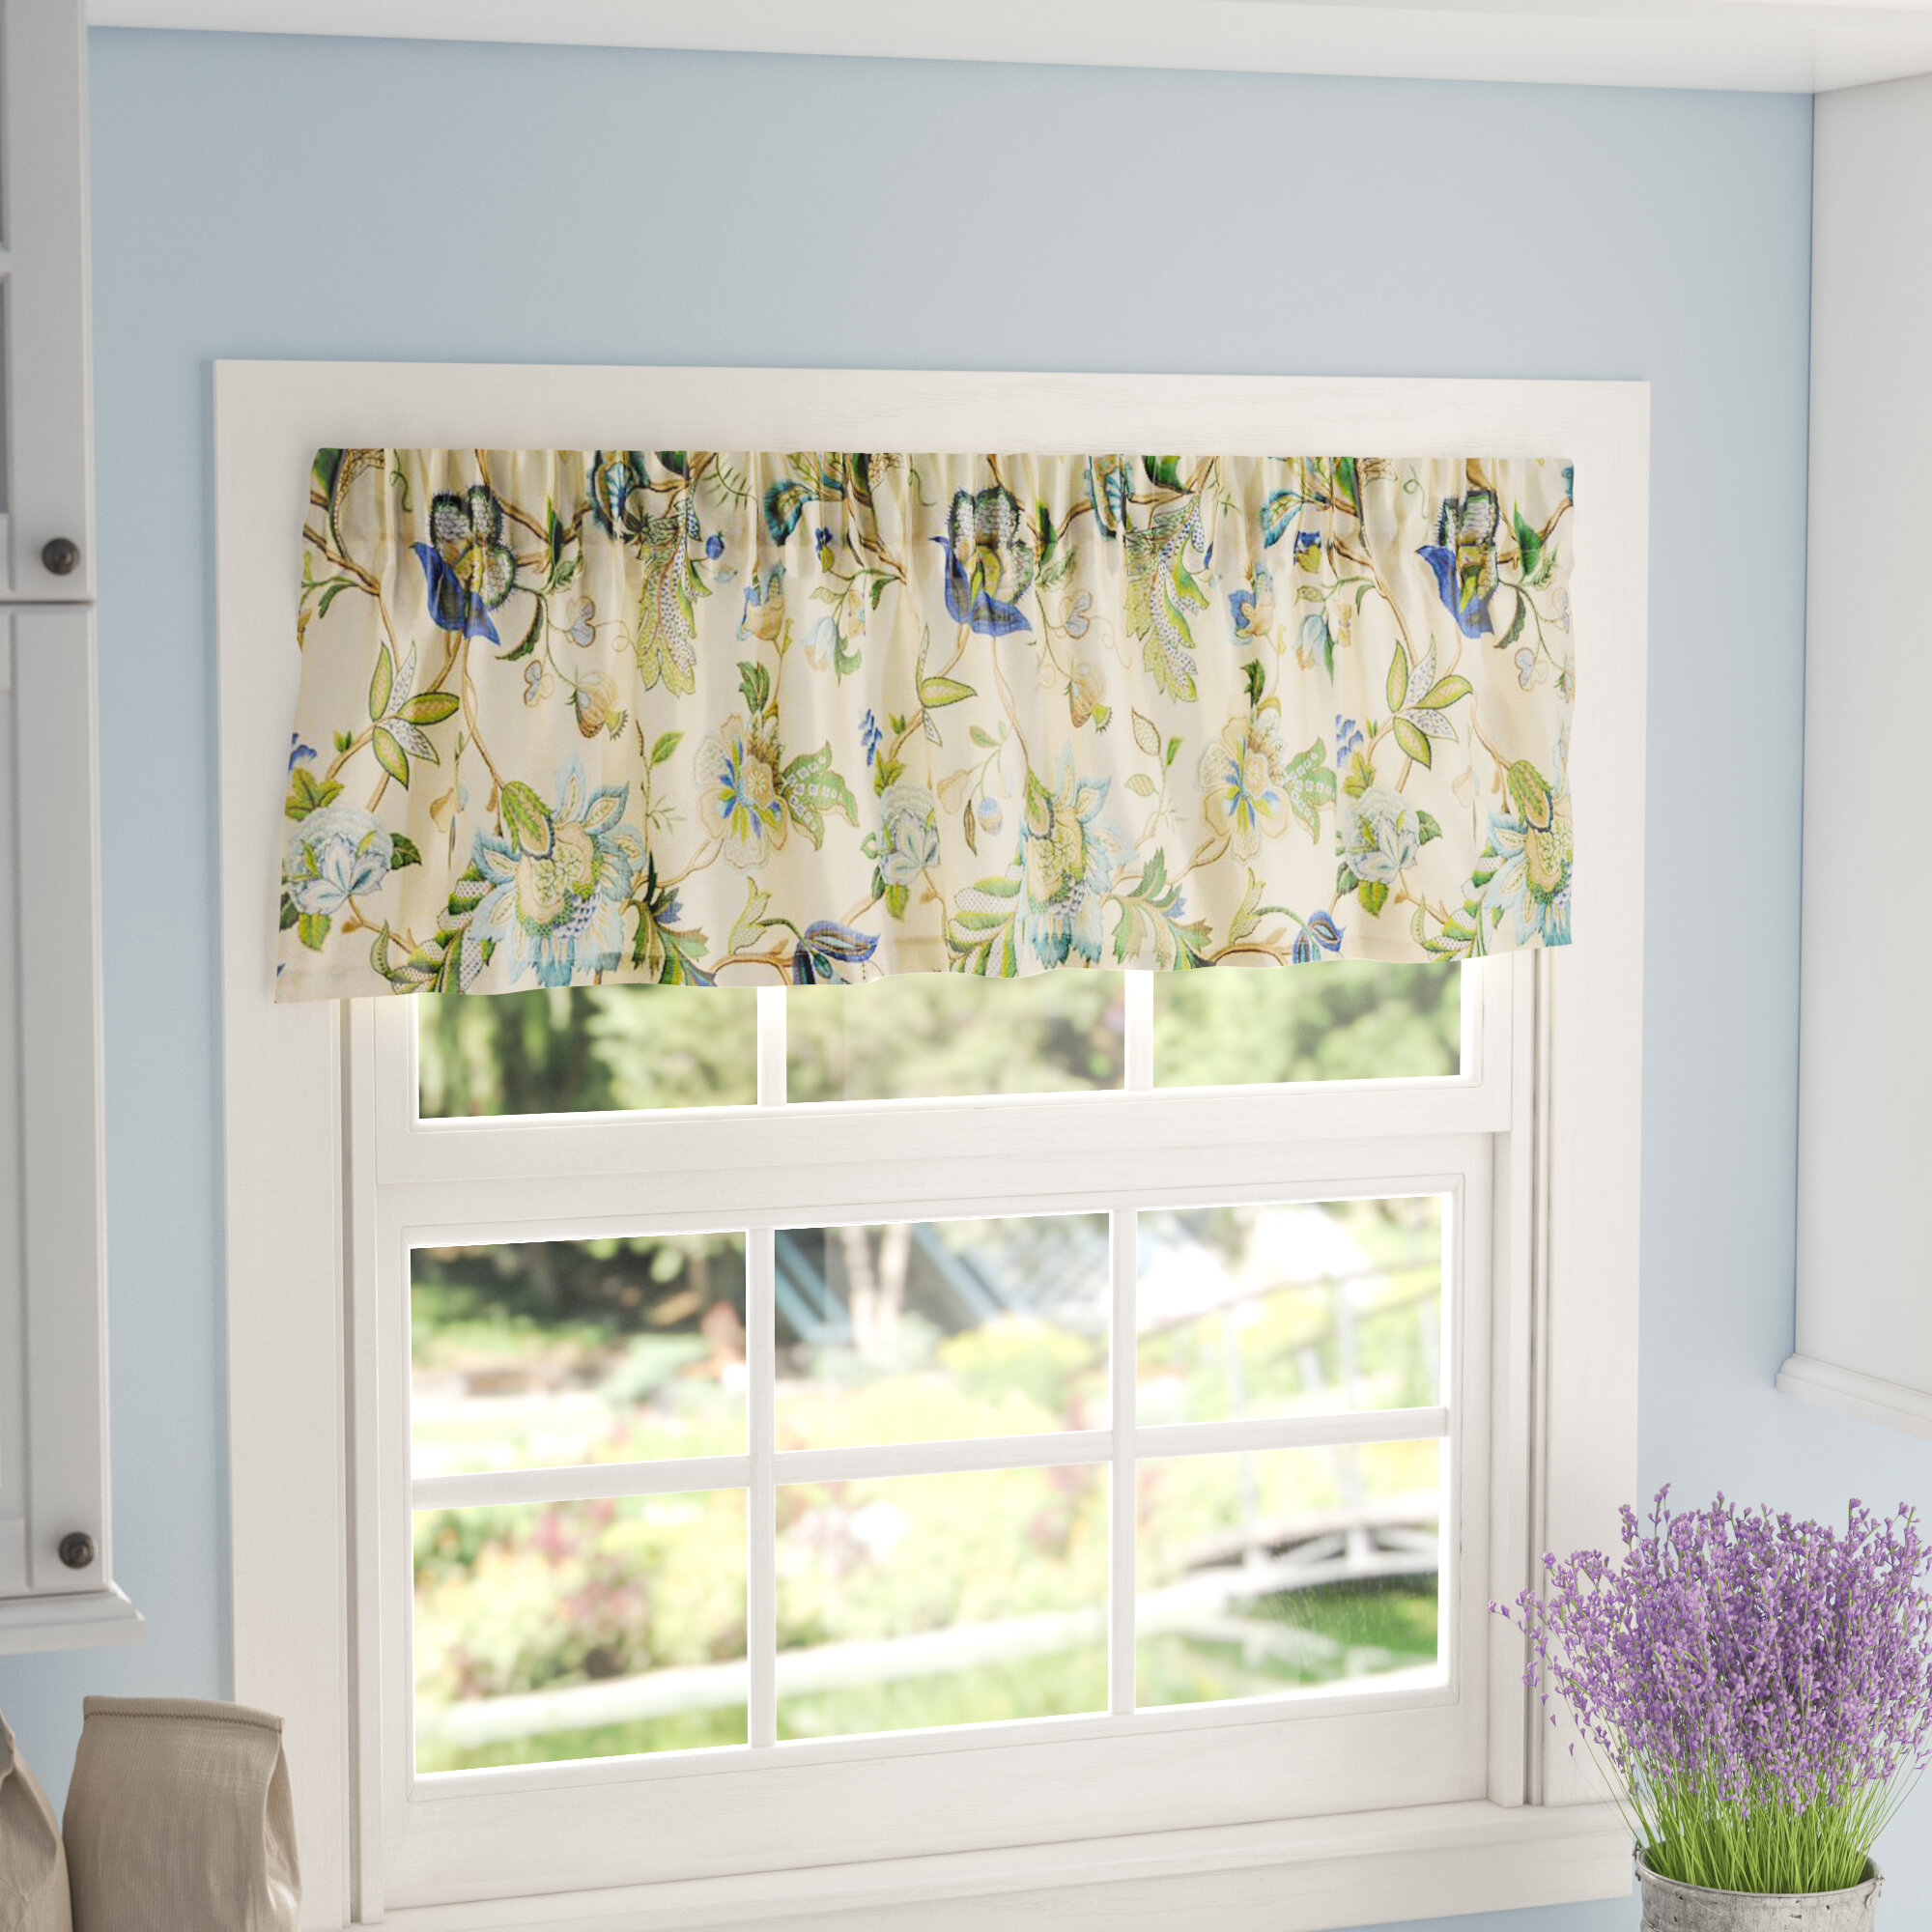 vertical white valances brown admirable design nurse full using wooden chair crib lacquered girl in curtain plastic deer basket window armchairs rectangle frigh pink nursery blue of cribs fabric motif and comforter size designs with sofa beautiful also green wood baby rectangular blind beauteous ideas curtains zoo valance